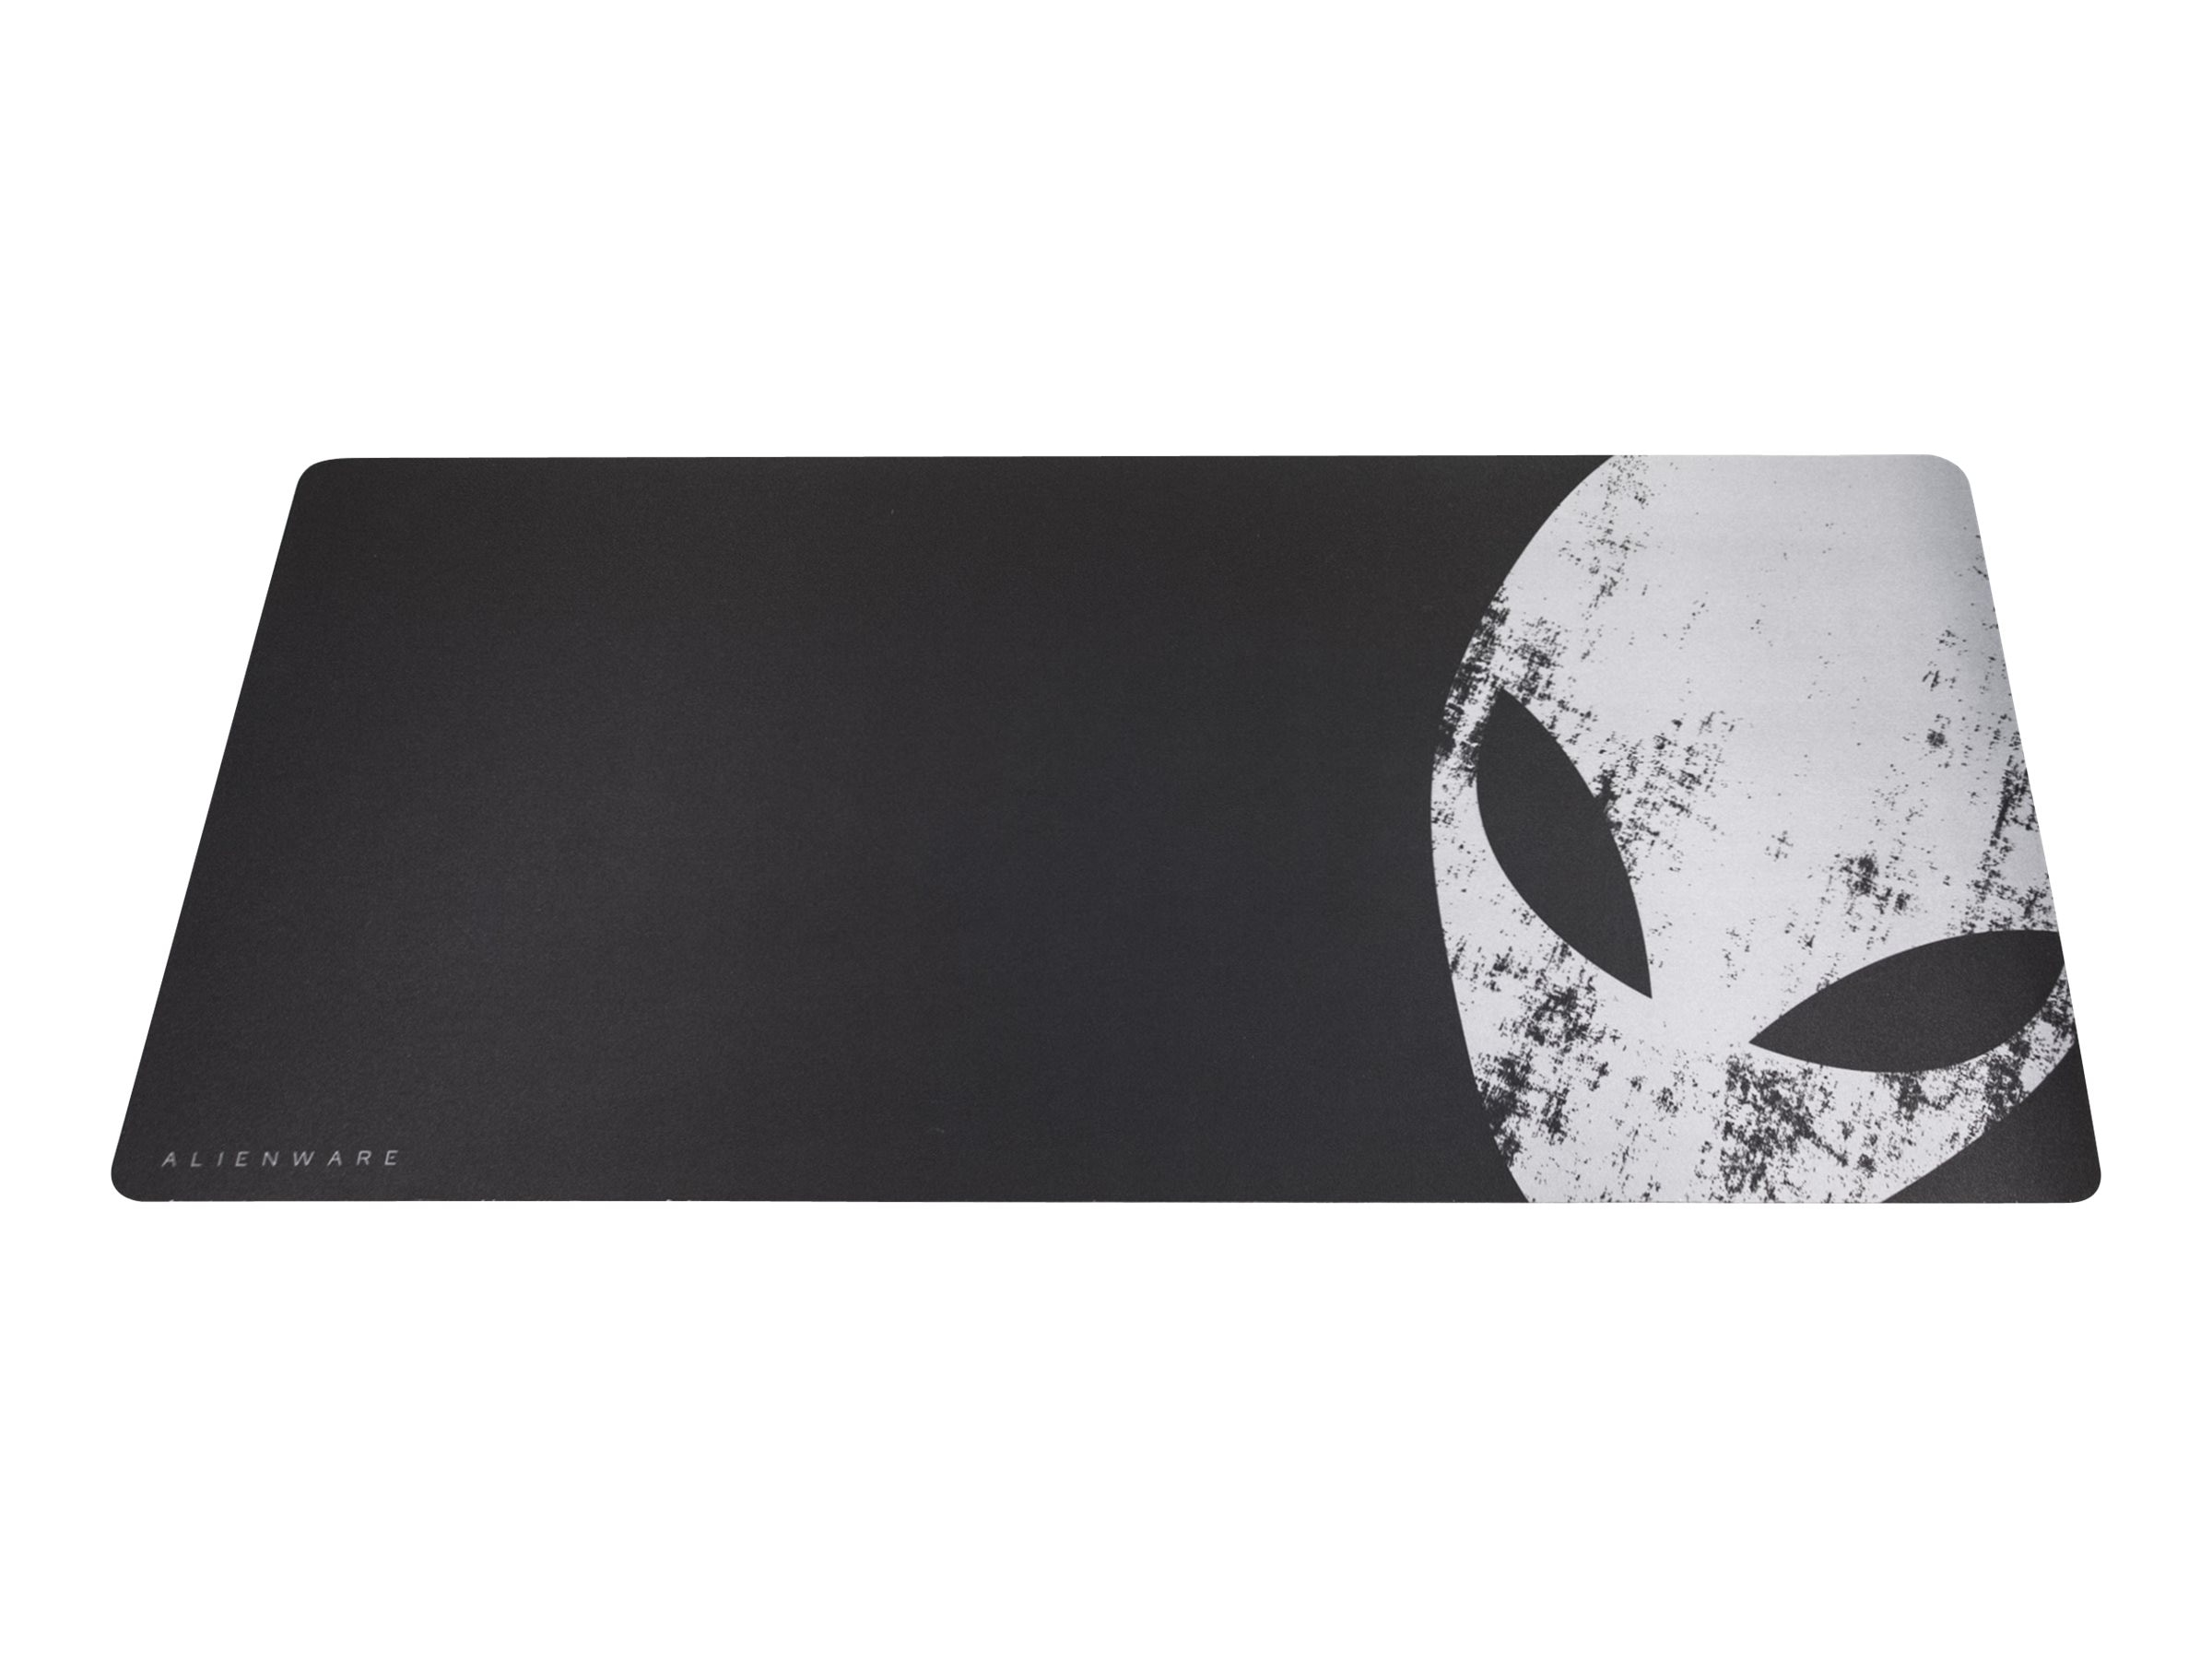 Mobile Edge Alienware Extra Large Gaming Mousepad, AWGMP1